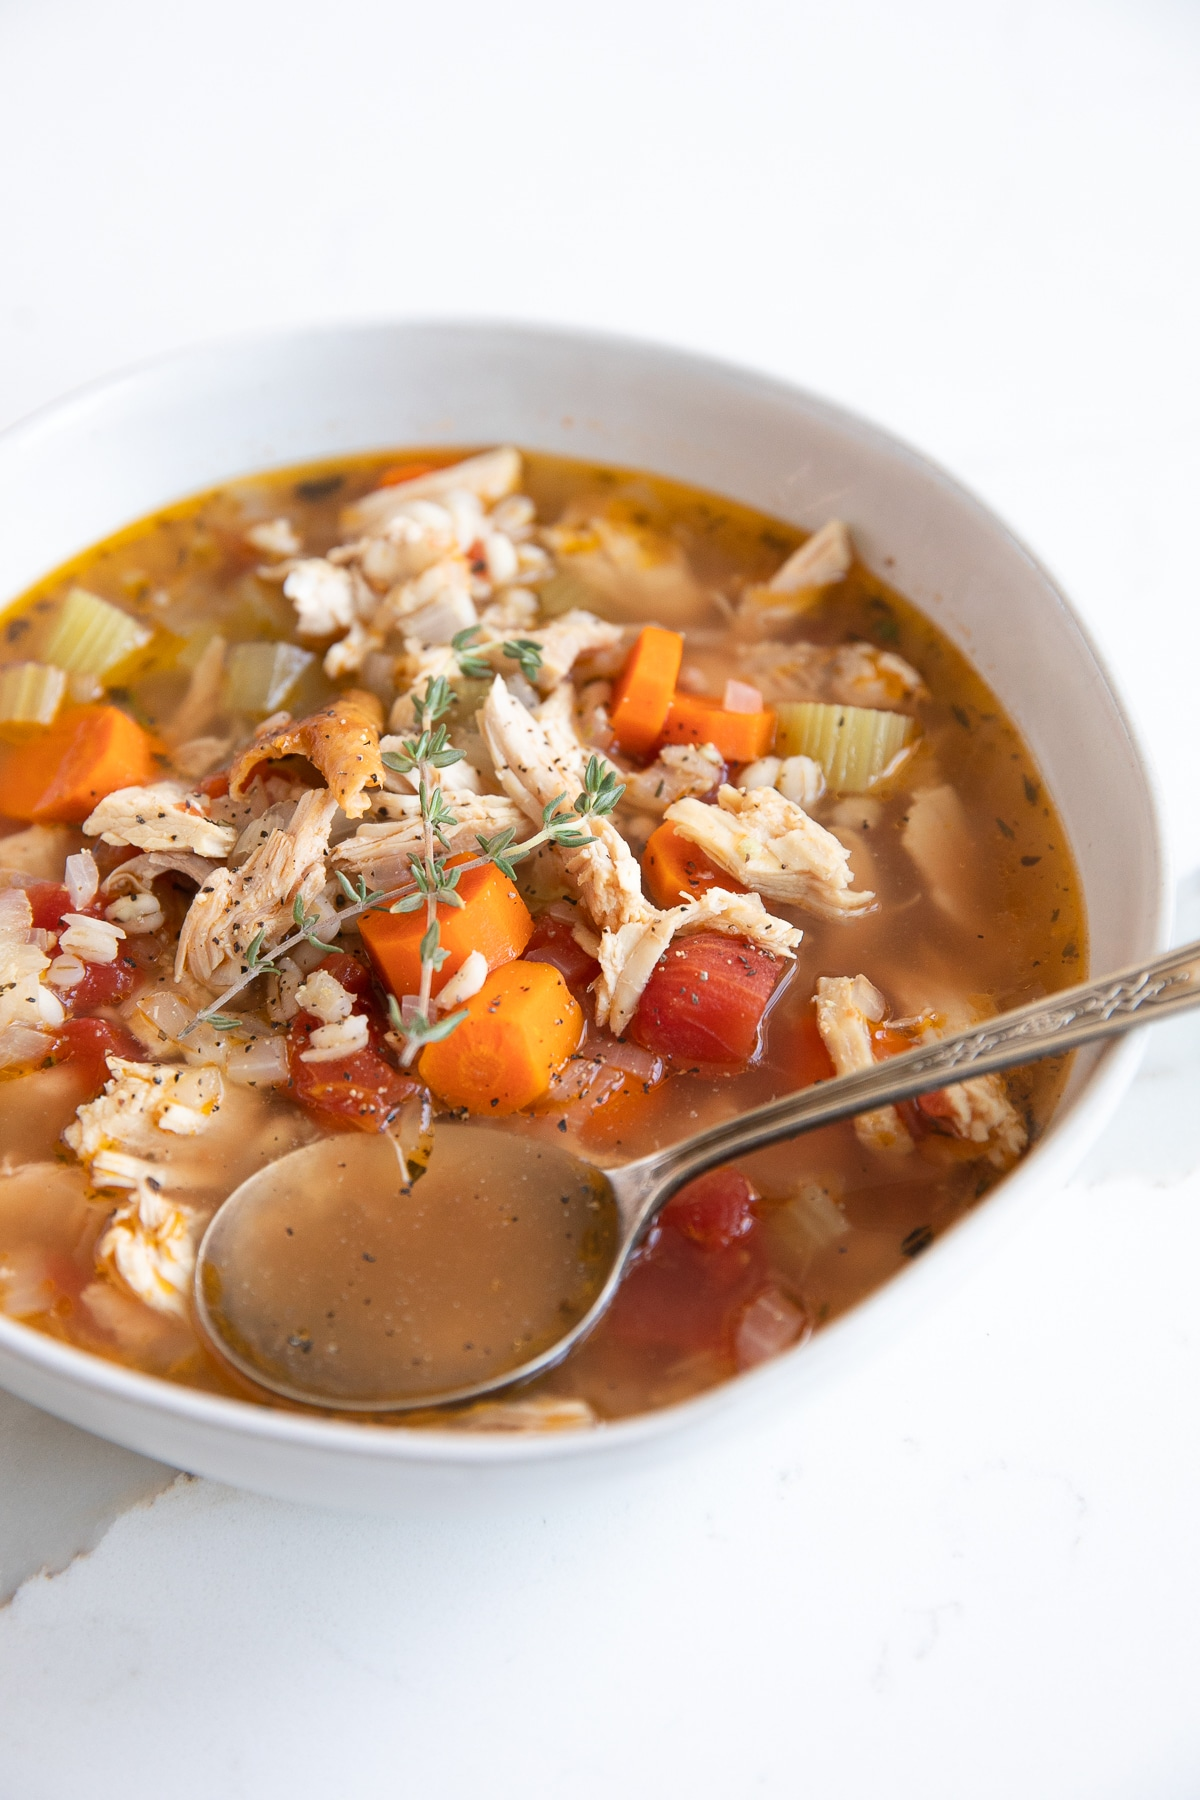 White shallow soup bowl filled with homemade leftover turkey soup filled with veggies, tomatoes, turkey, and barley.